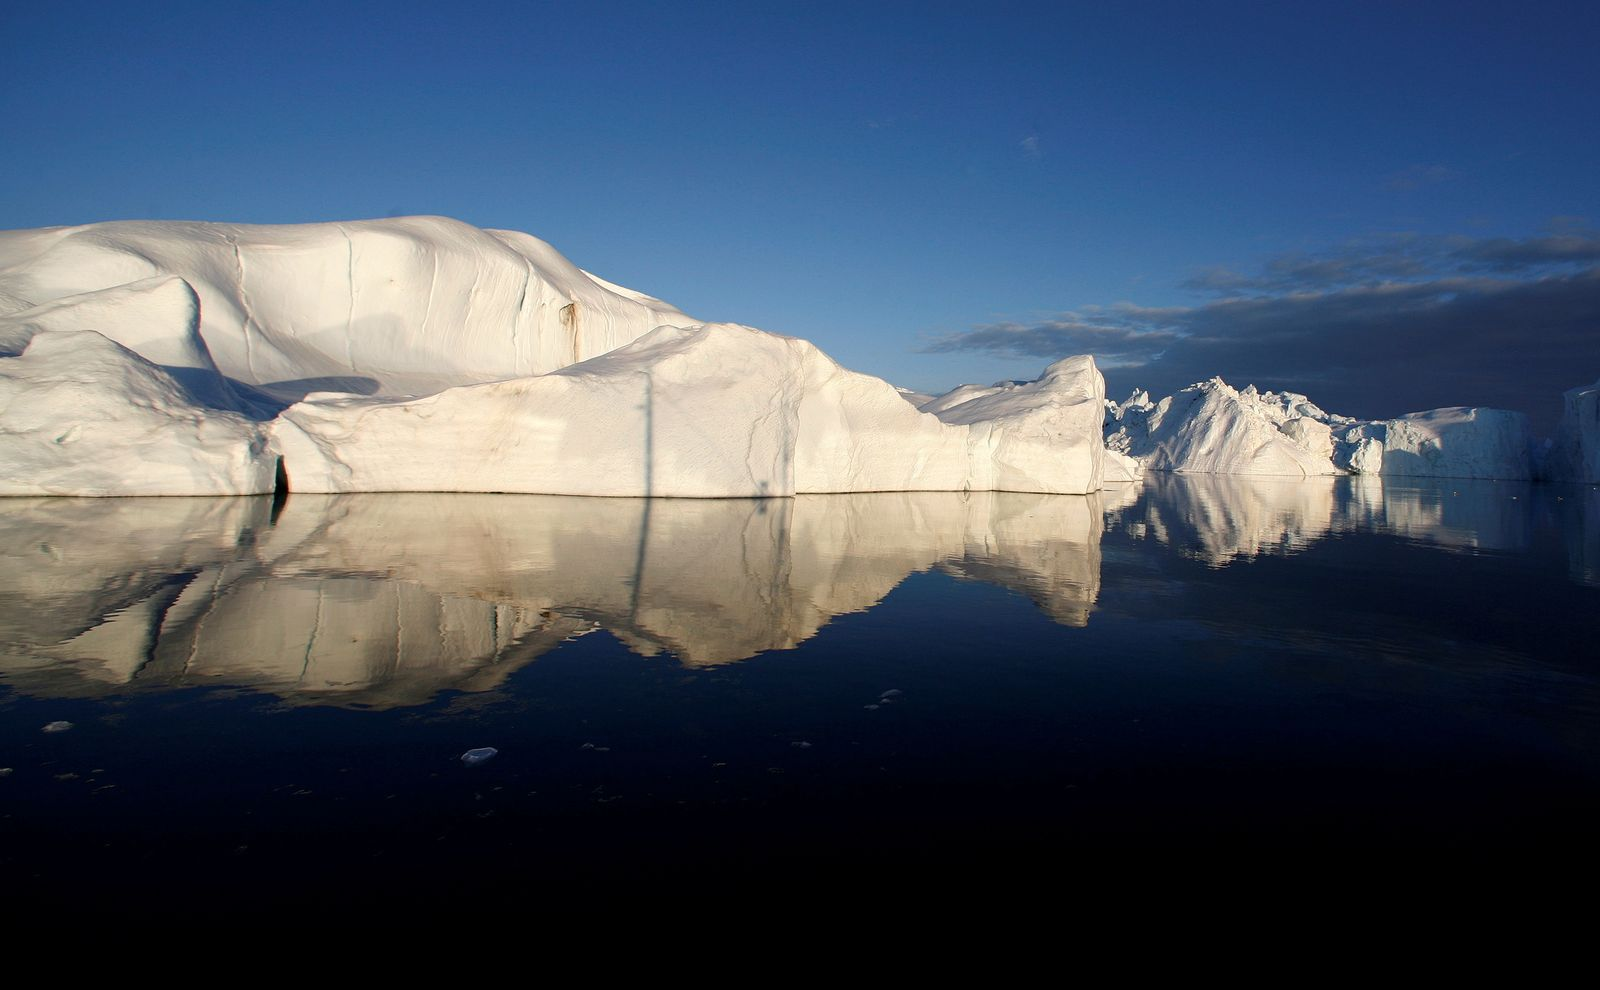 FILE PHOTO: Icebergs are reflected in the calm waters at the mouth of the Jakobshavn ice fjord near Ilulissat